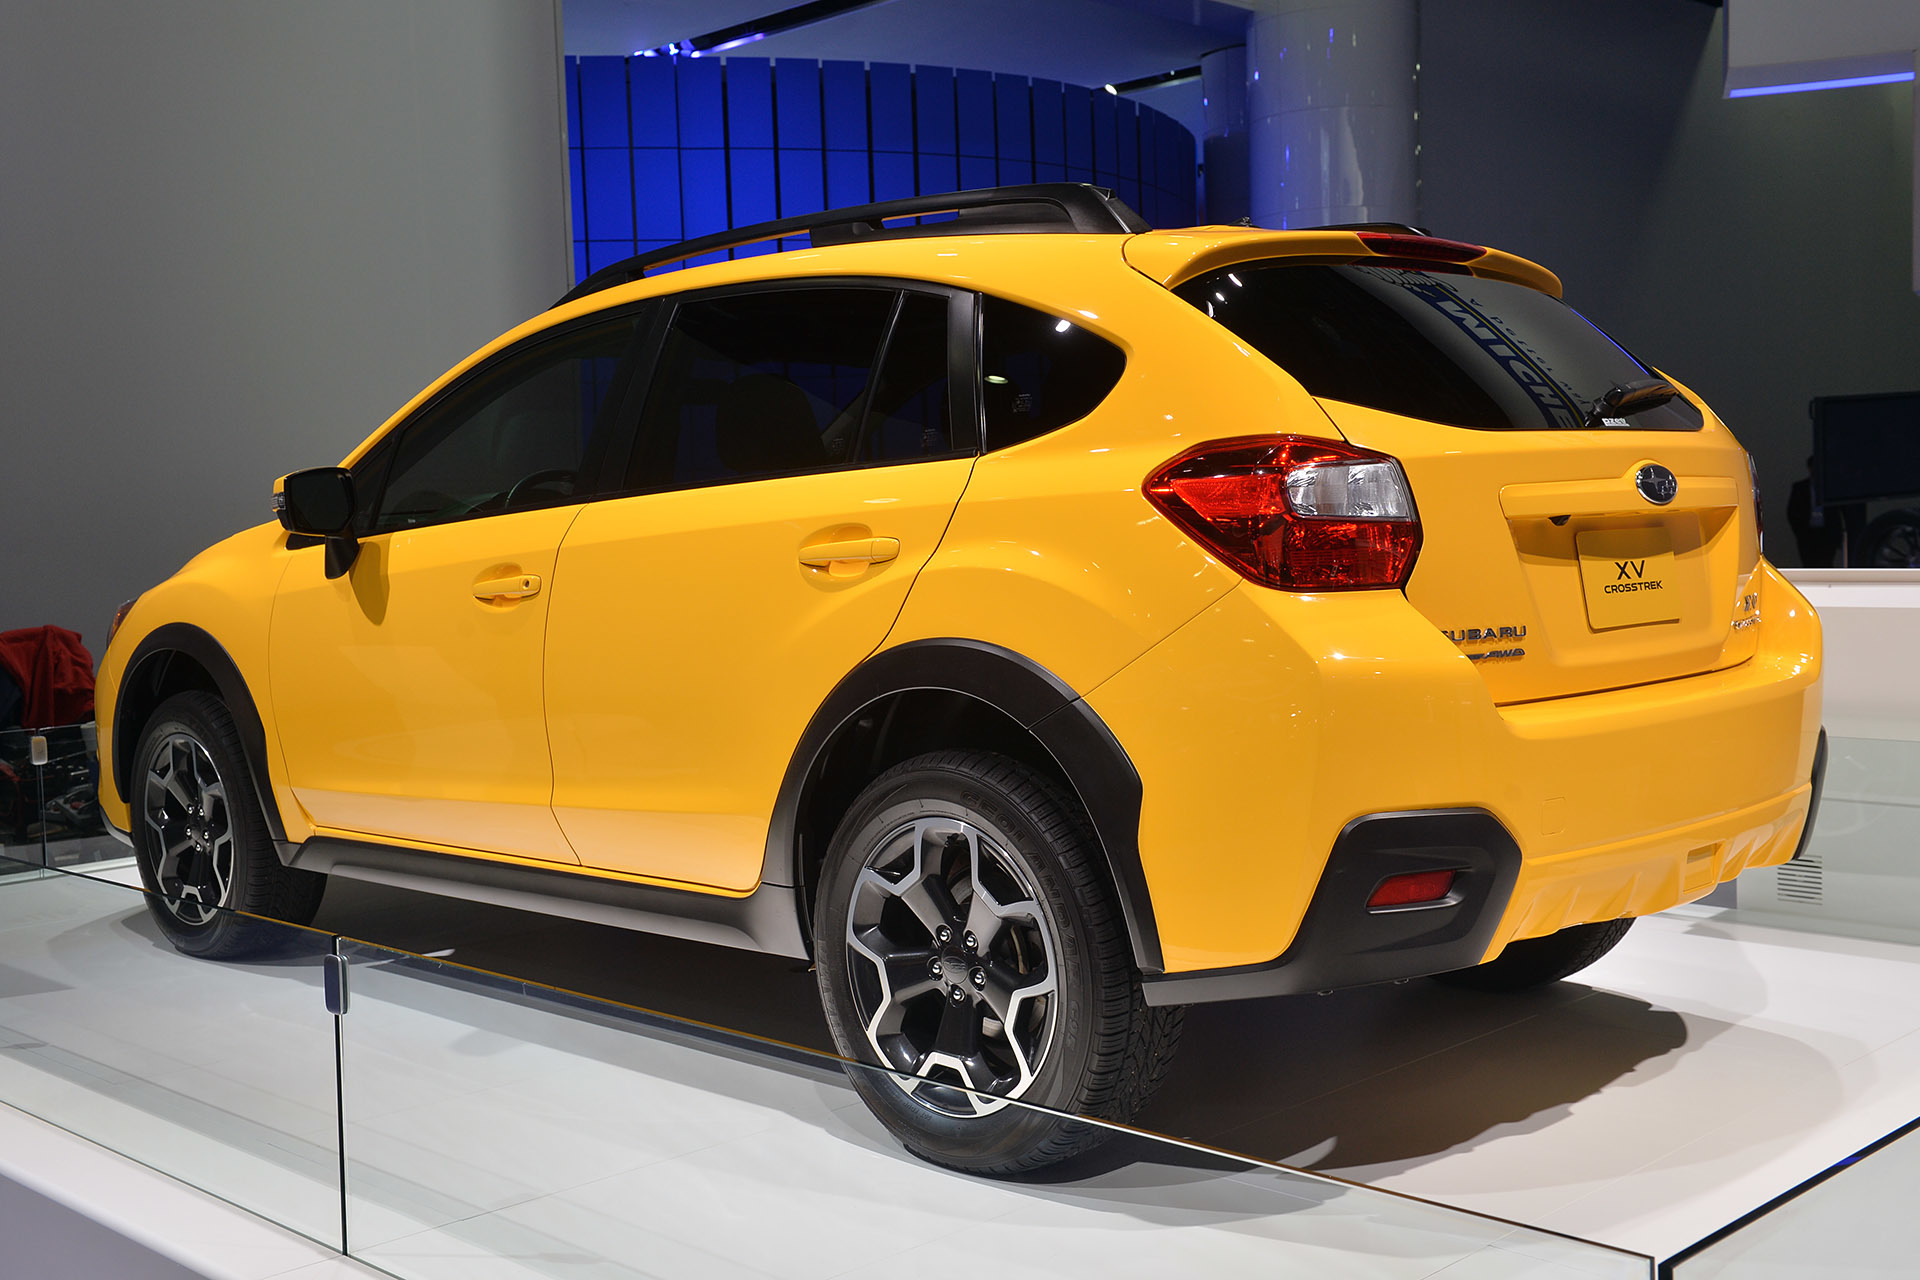 2015 subaru xv crosstrek special edition detroit 2015 photo gallery autoblog. Black Bedroom Furniture Sets. Home Design Ideas